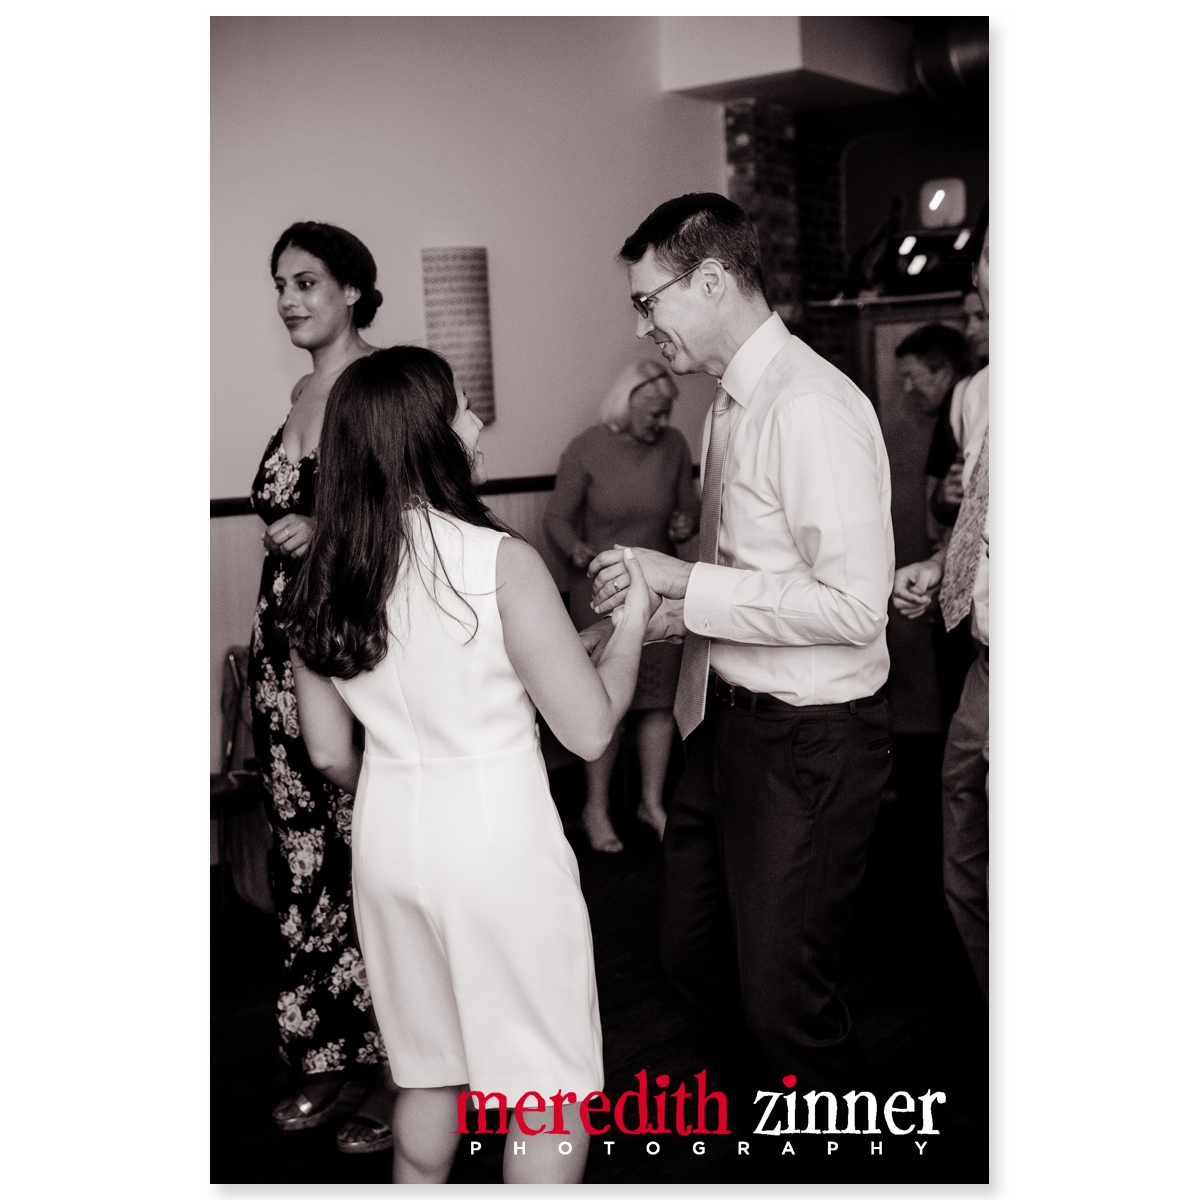 Meredith_Zinner_Photography_StilesCelebration_0349